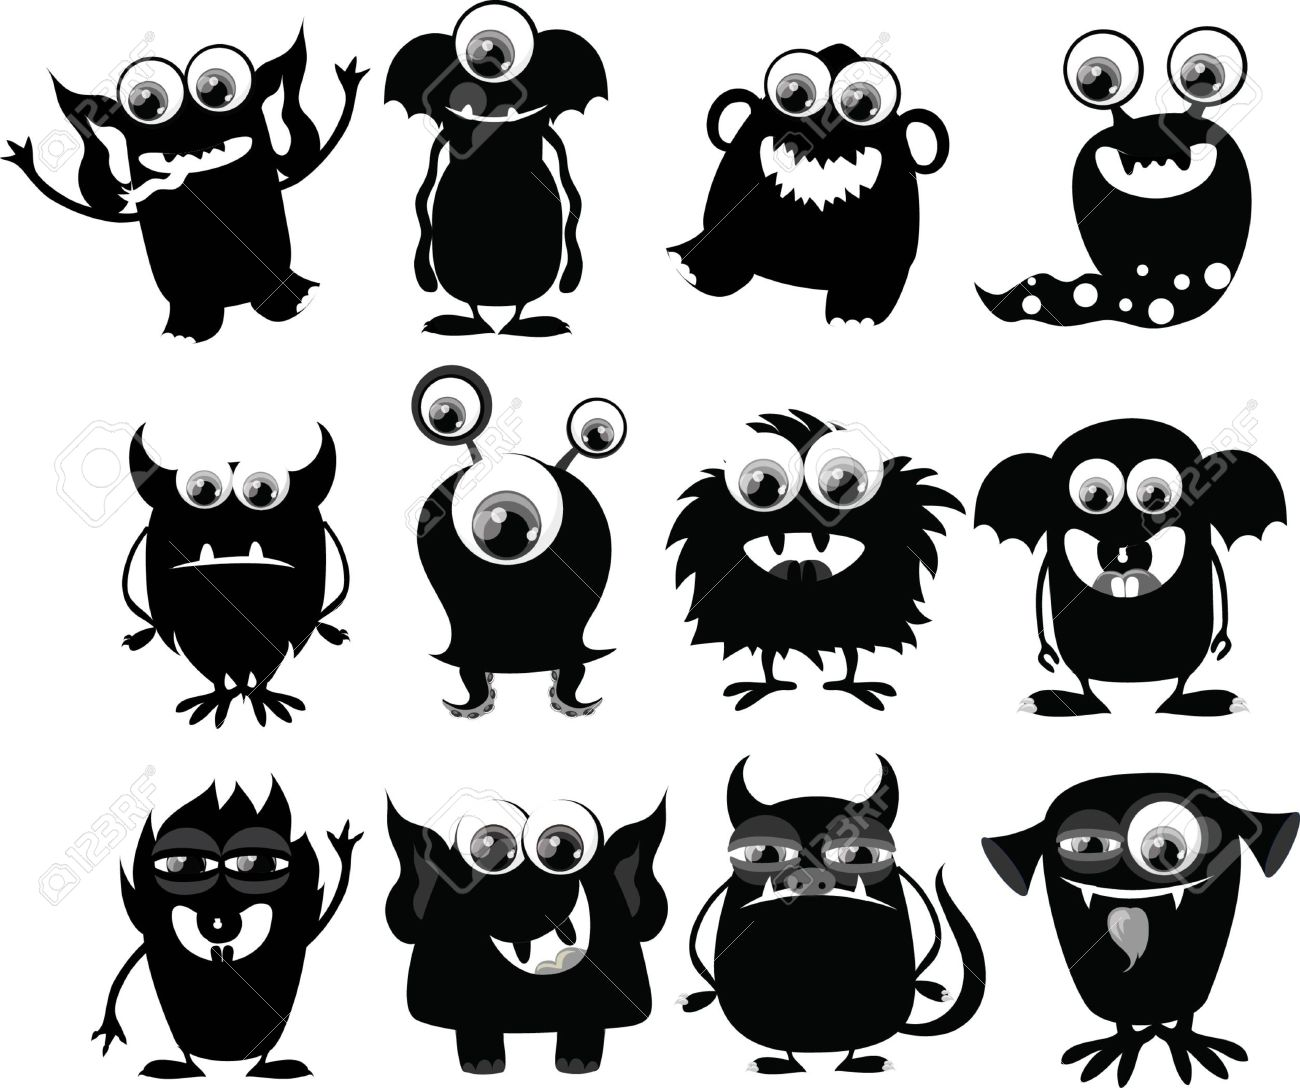 Cartoon Cute Black And White Monsters Royalty Free Cliparts.